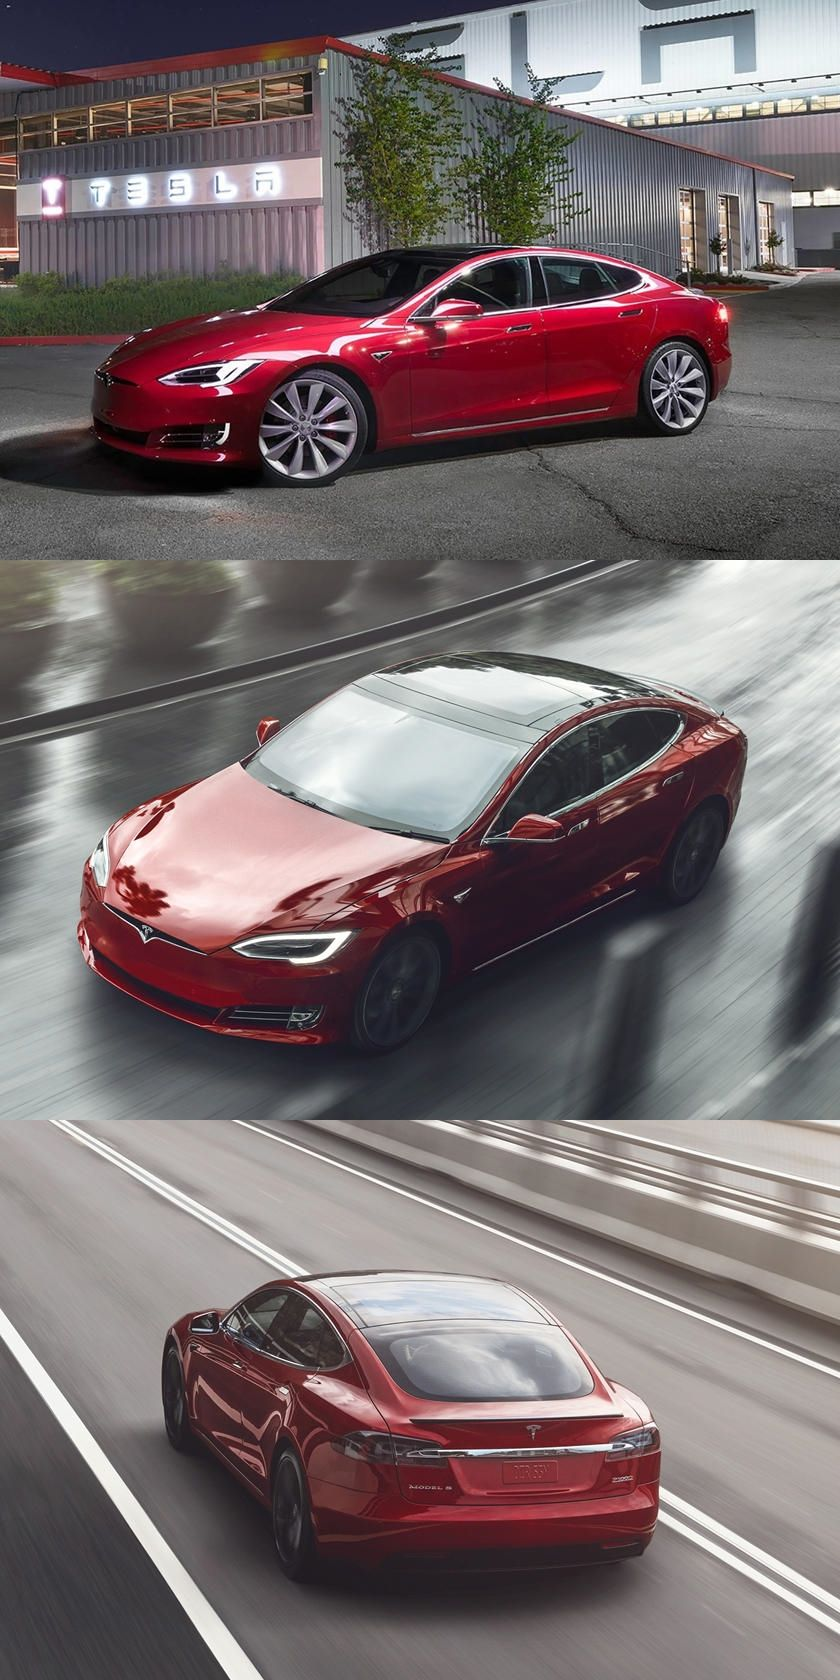 Tesla Plans To Make Car Insurance A Whole Lot Cheaper Tesla Is Aiming To Offer Insurance On Every Privately Owned Car Used With Its Tesla